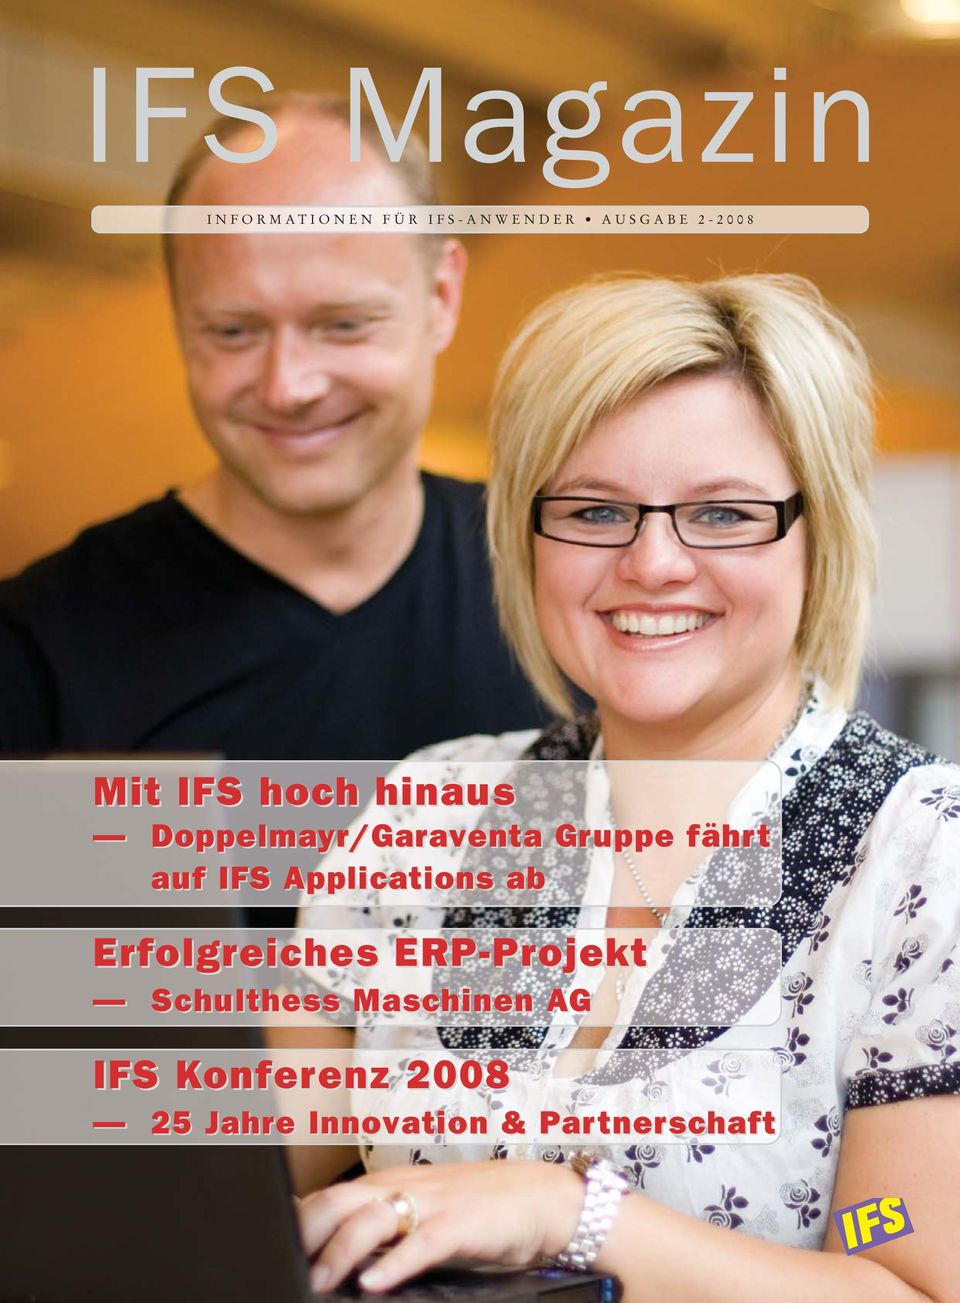 IFS Applications ab Erfolgreiches ERP-Projekt Schulthess